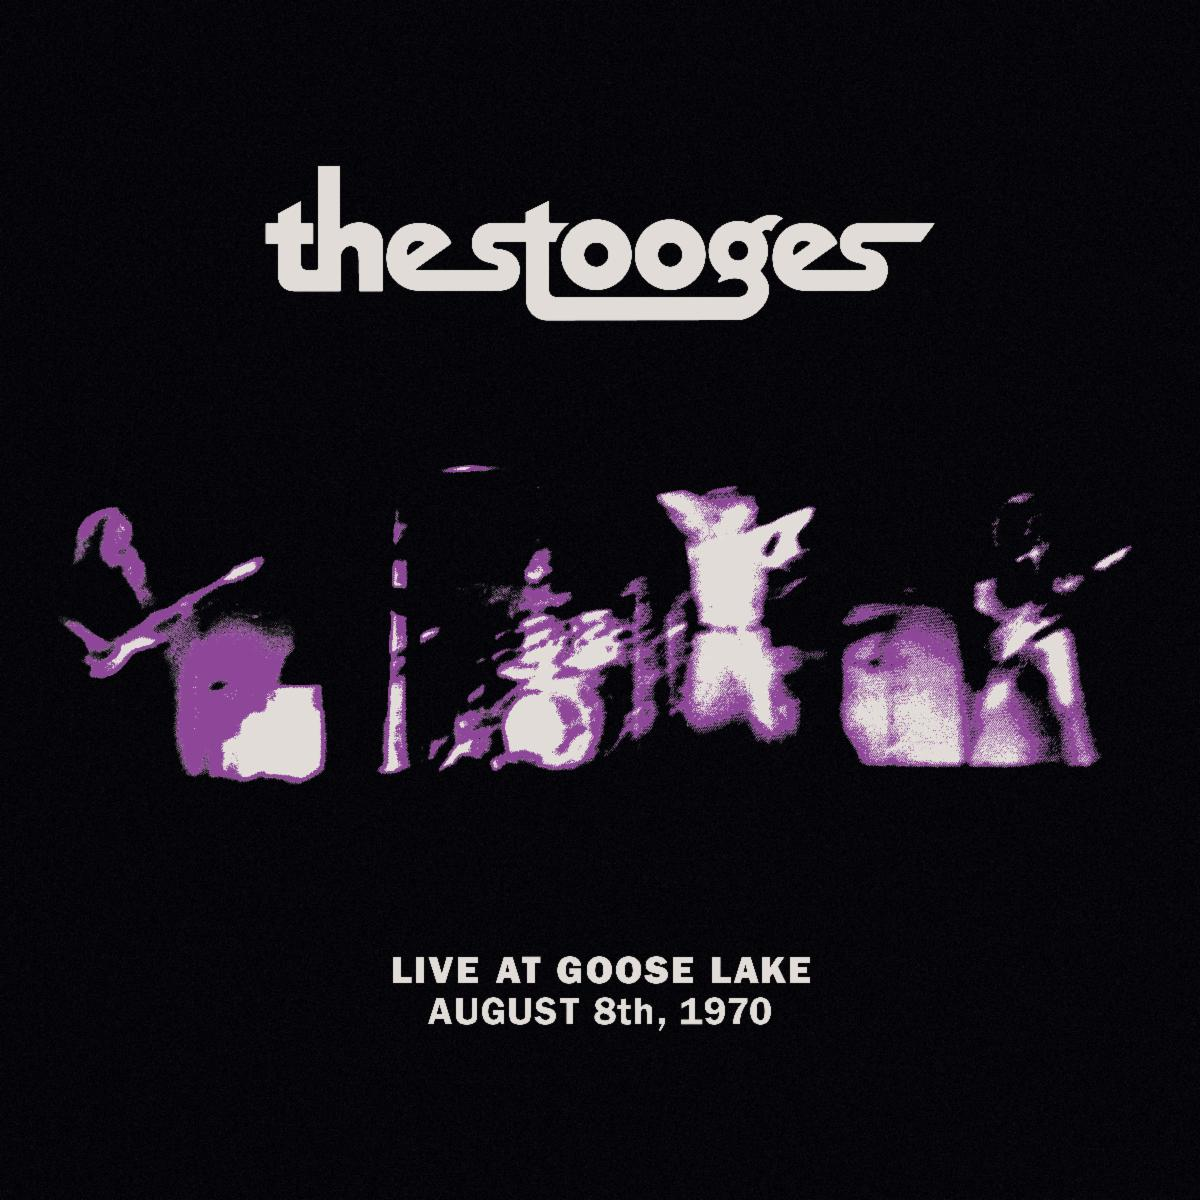 Stooges Live at Goose lake